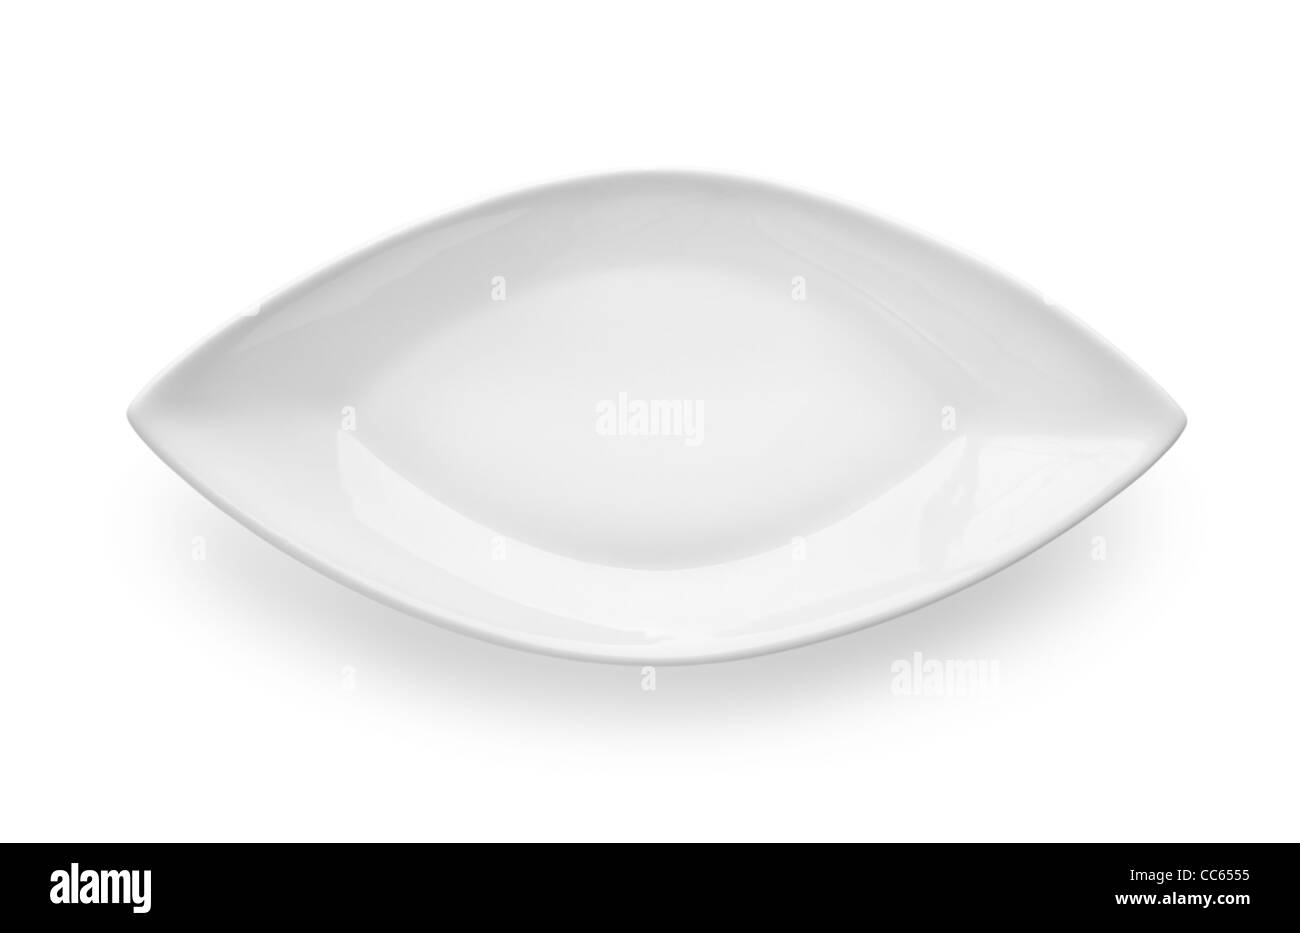 Utensils for fish isolated on a white background Path - Stock Image